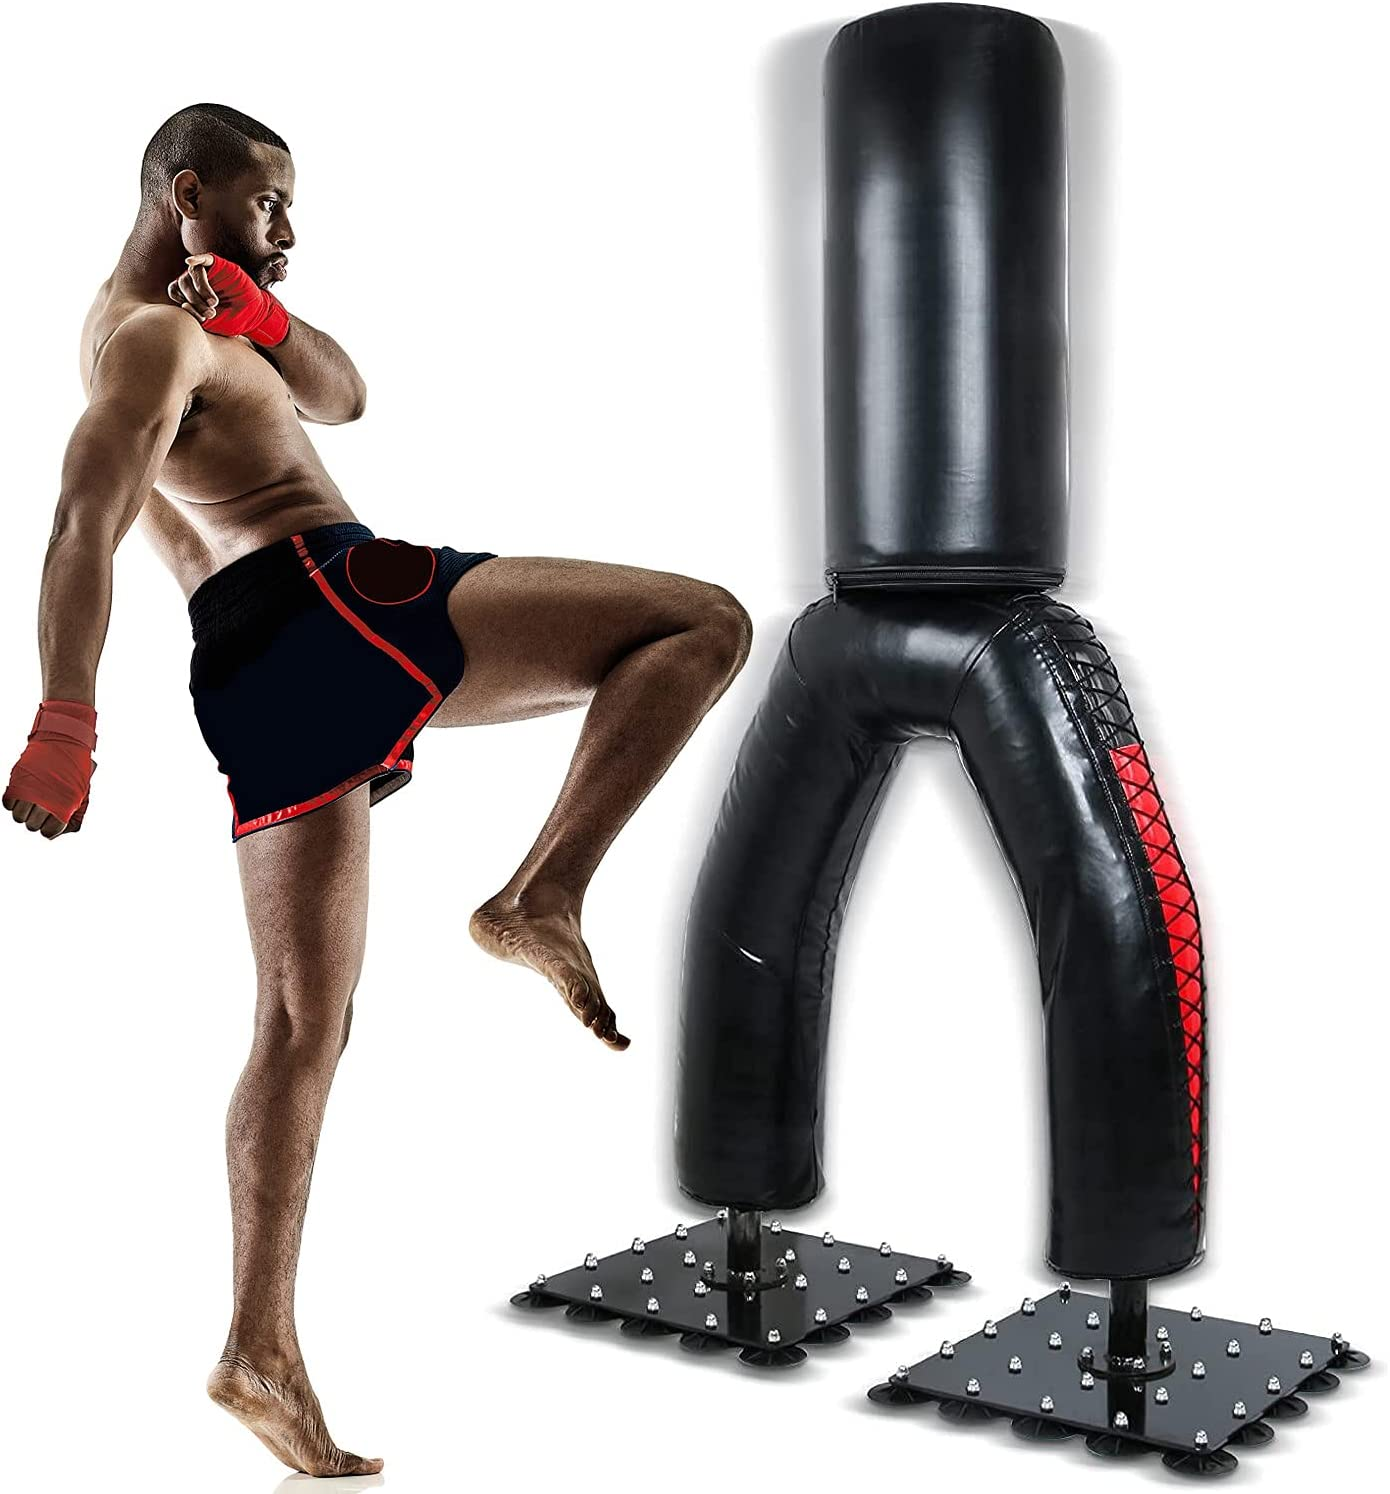 ZUEBRTAY Freestanding Punching Bag-67'' Tall on fe Standing Free shipping Both Indianapolis Mall